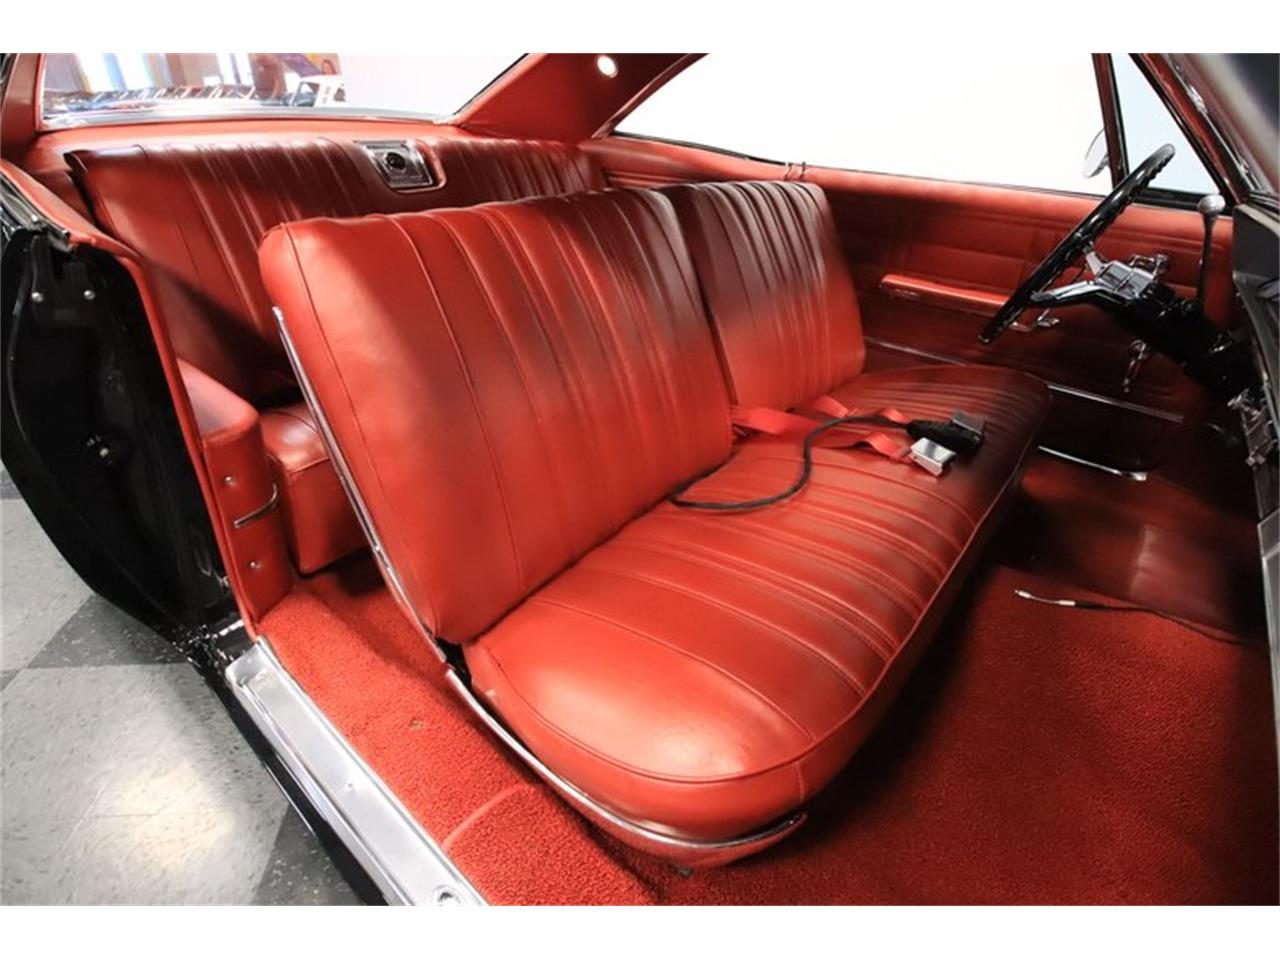 Large Picture of 1966 Chevrolet Impala located in Mesa Arizona Offered by Streetside Classics - Phoenix - Q2EF